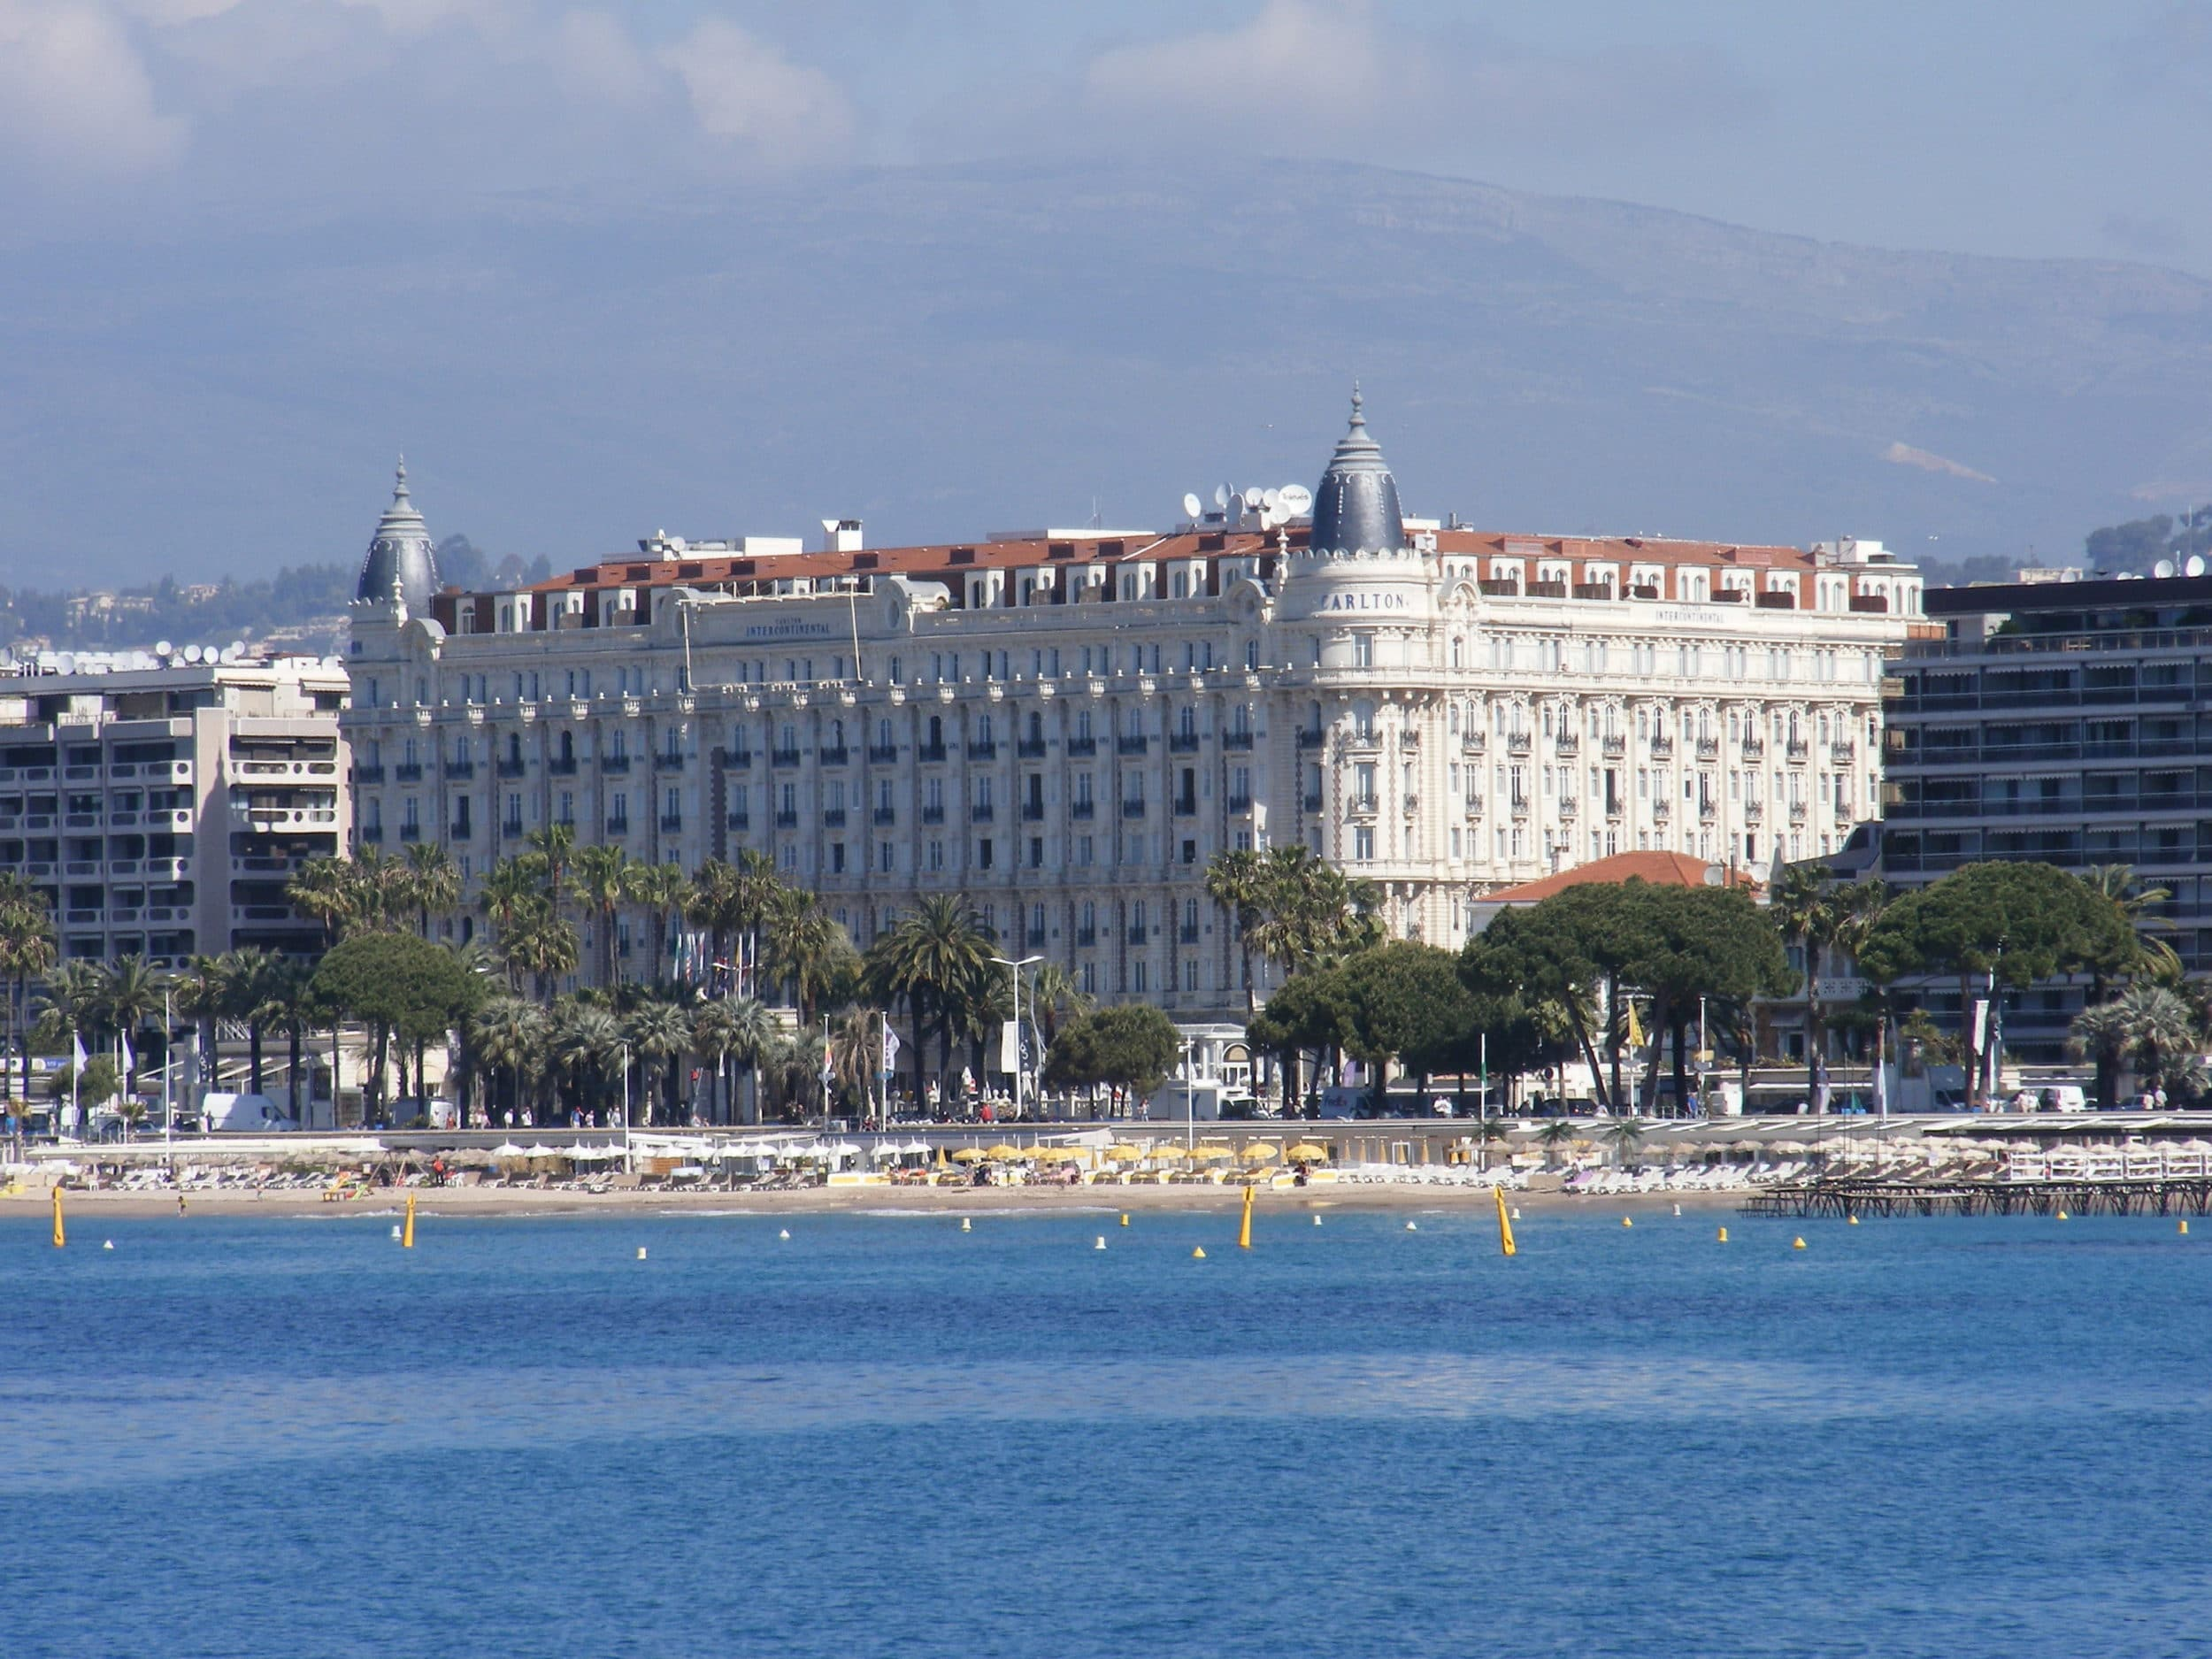 Hotel Carlton in Cannes has been in many movies.